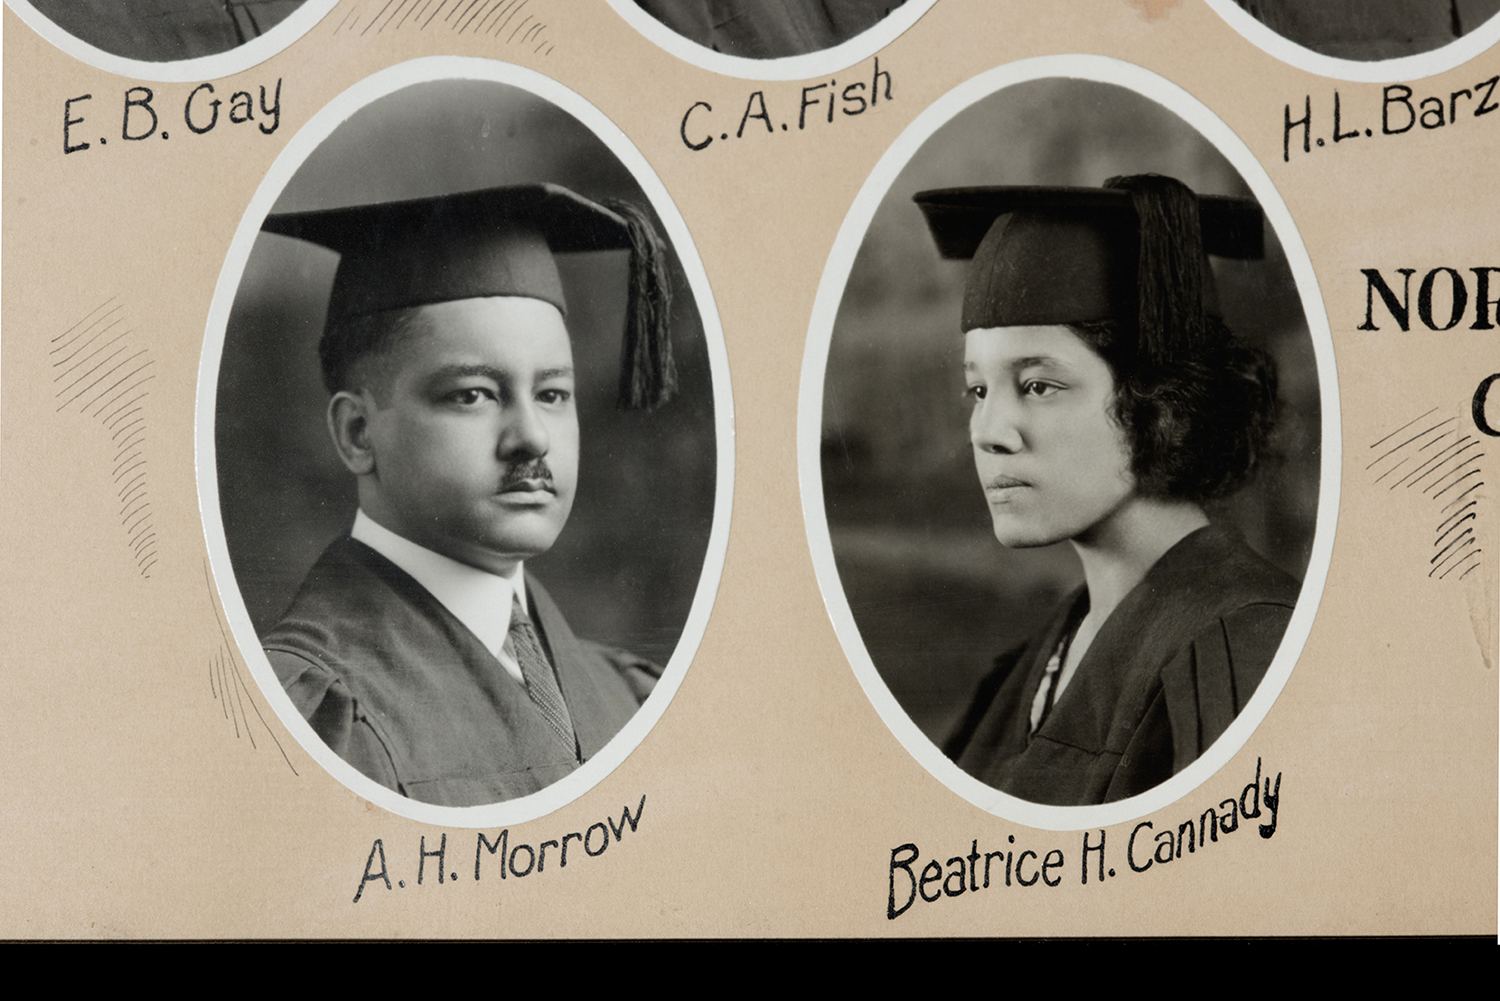 A.H. Morrow and Beatrice H. Cannady, NWCL Class of 1922